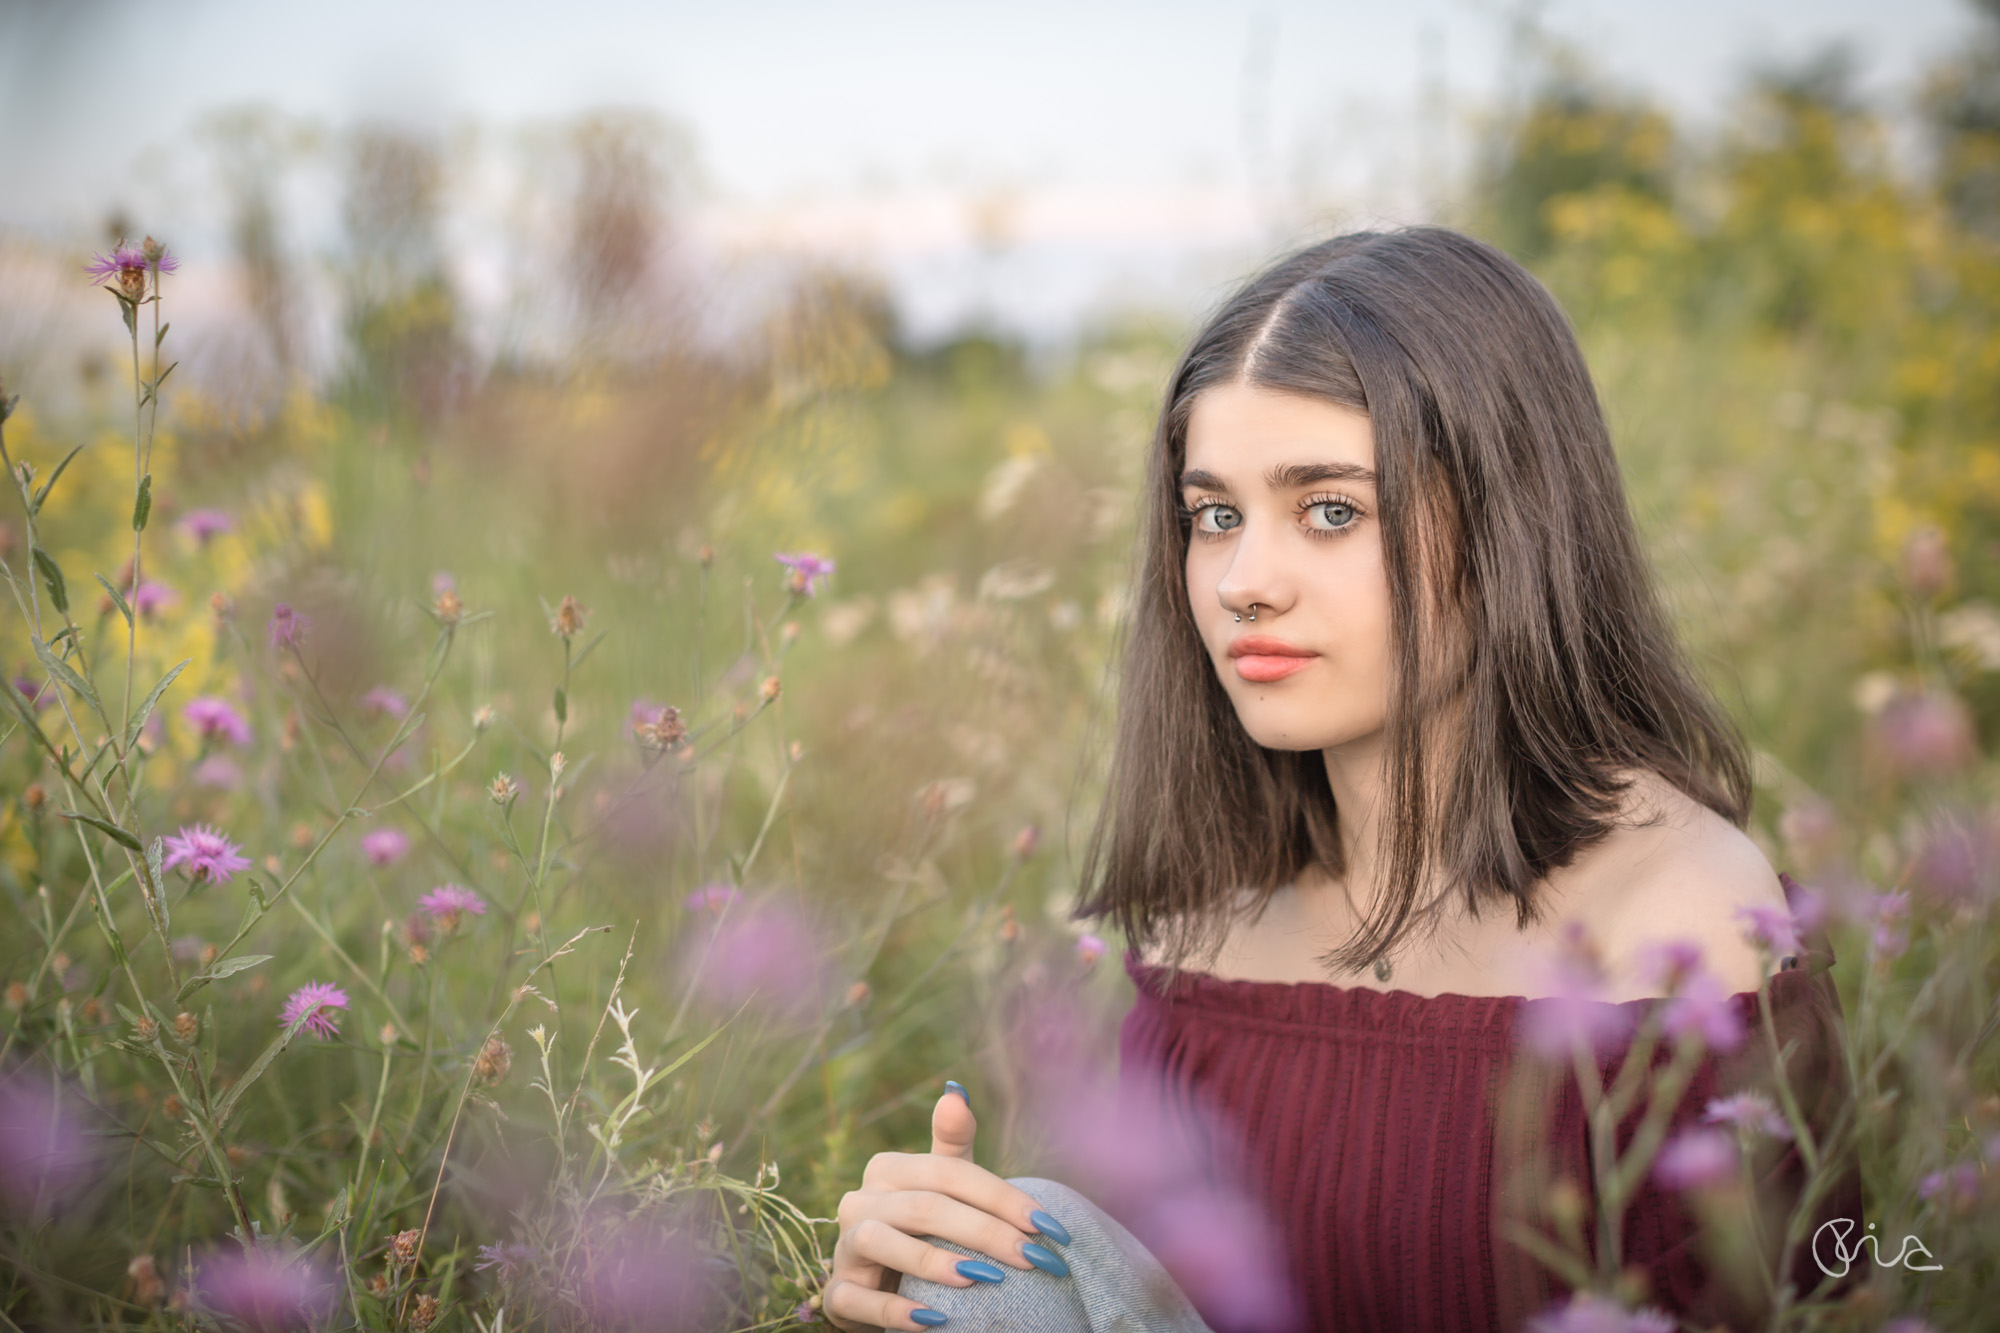 Portrait shoot with wild flowers